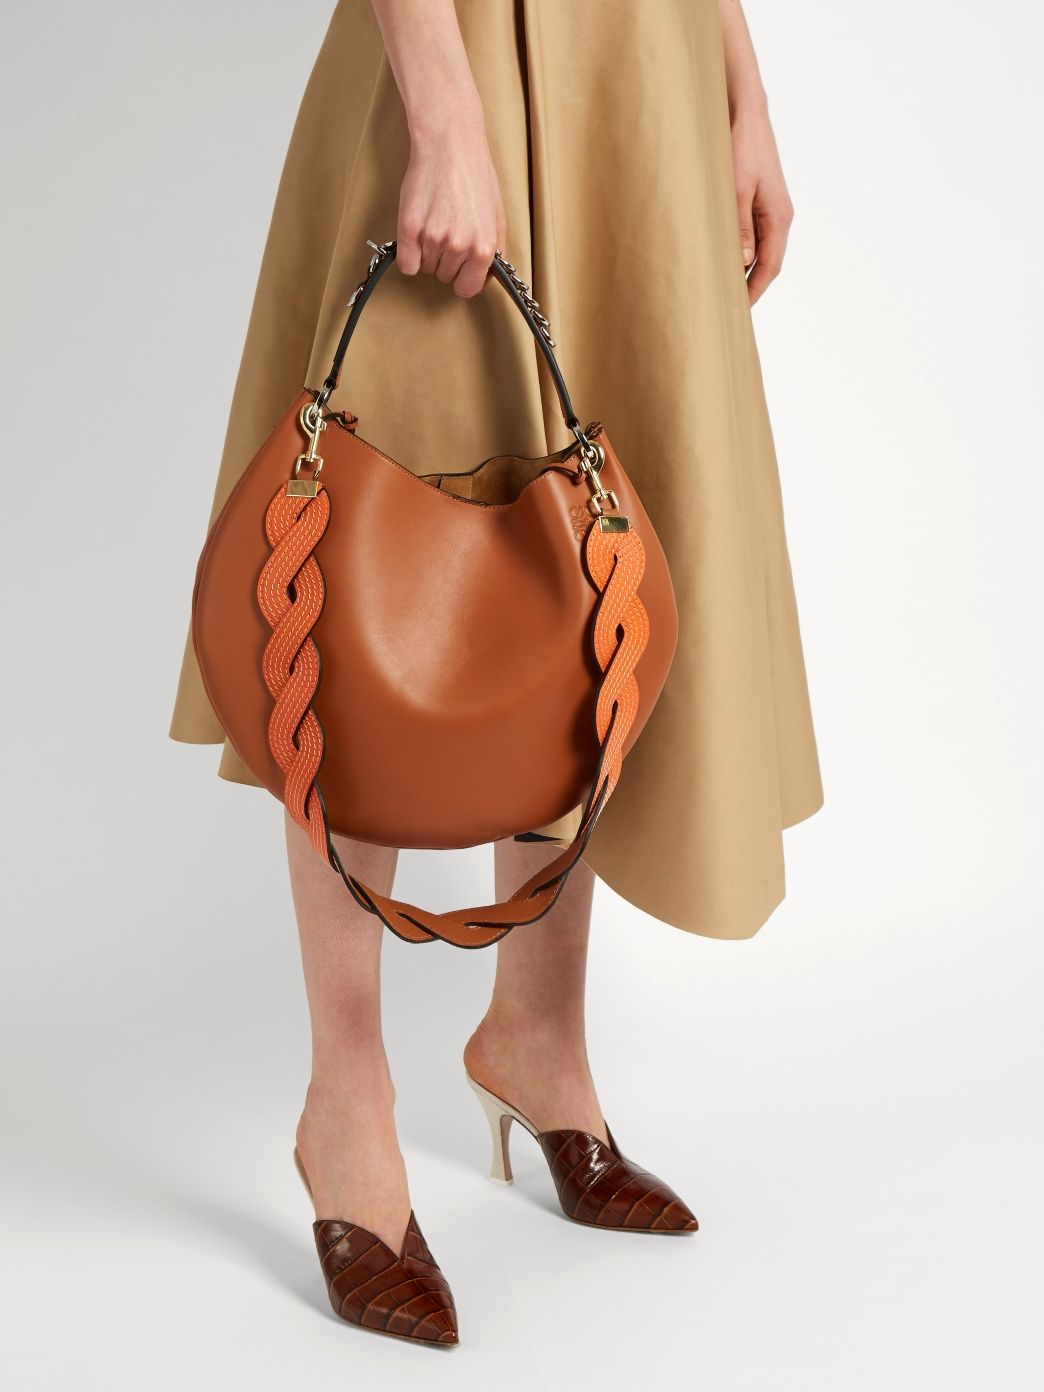 c38c916f46 Click here to buy Loewe Twisted wave leather bag strap at  MATCHESFASHION.COM https